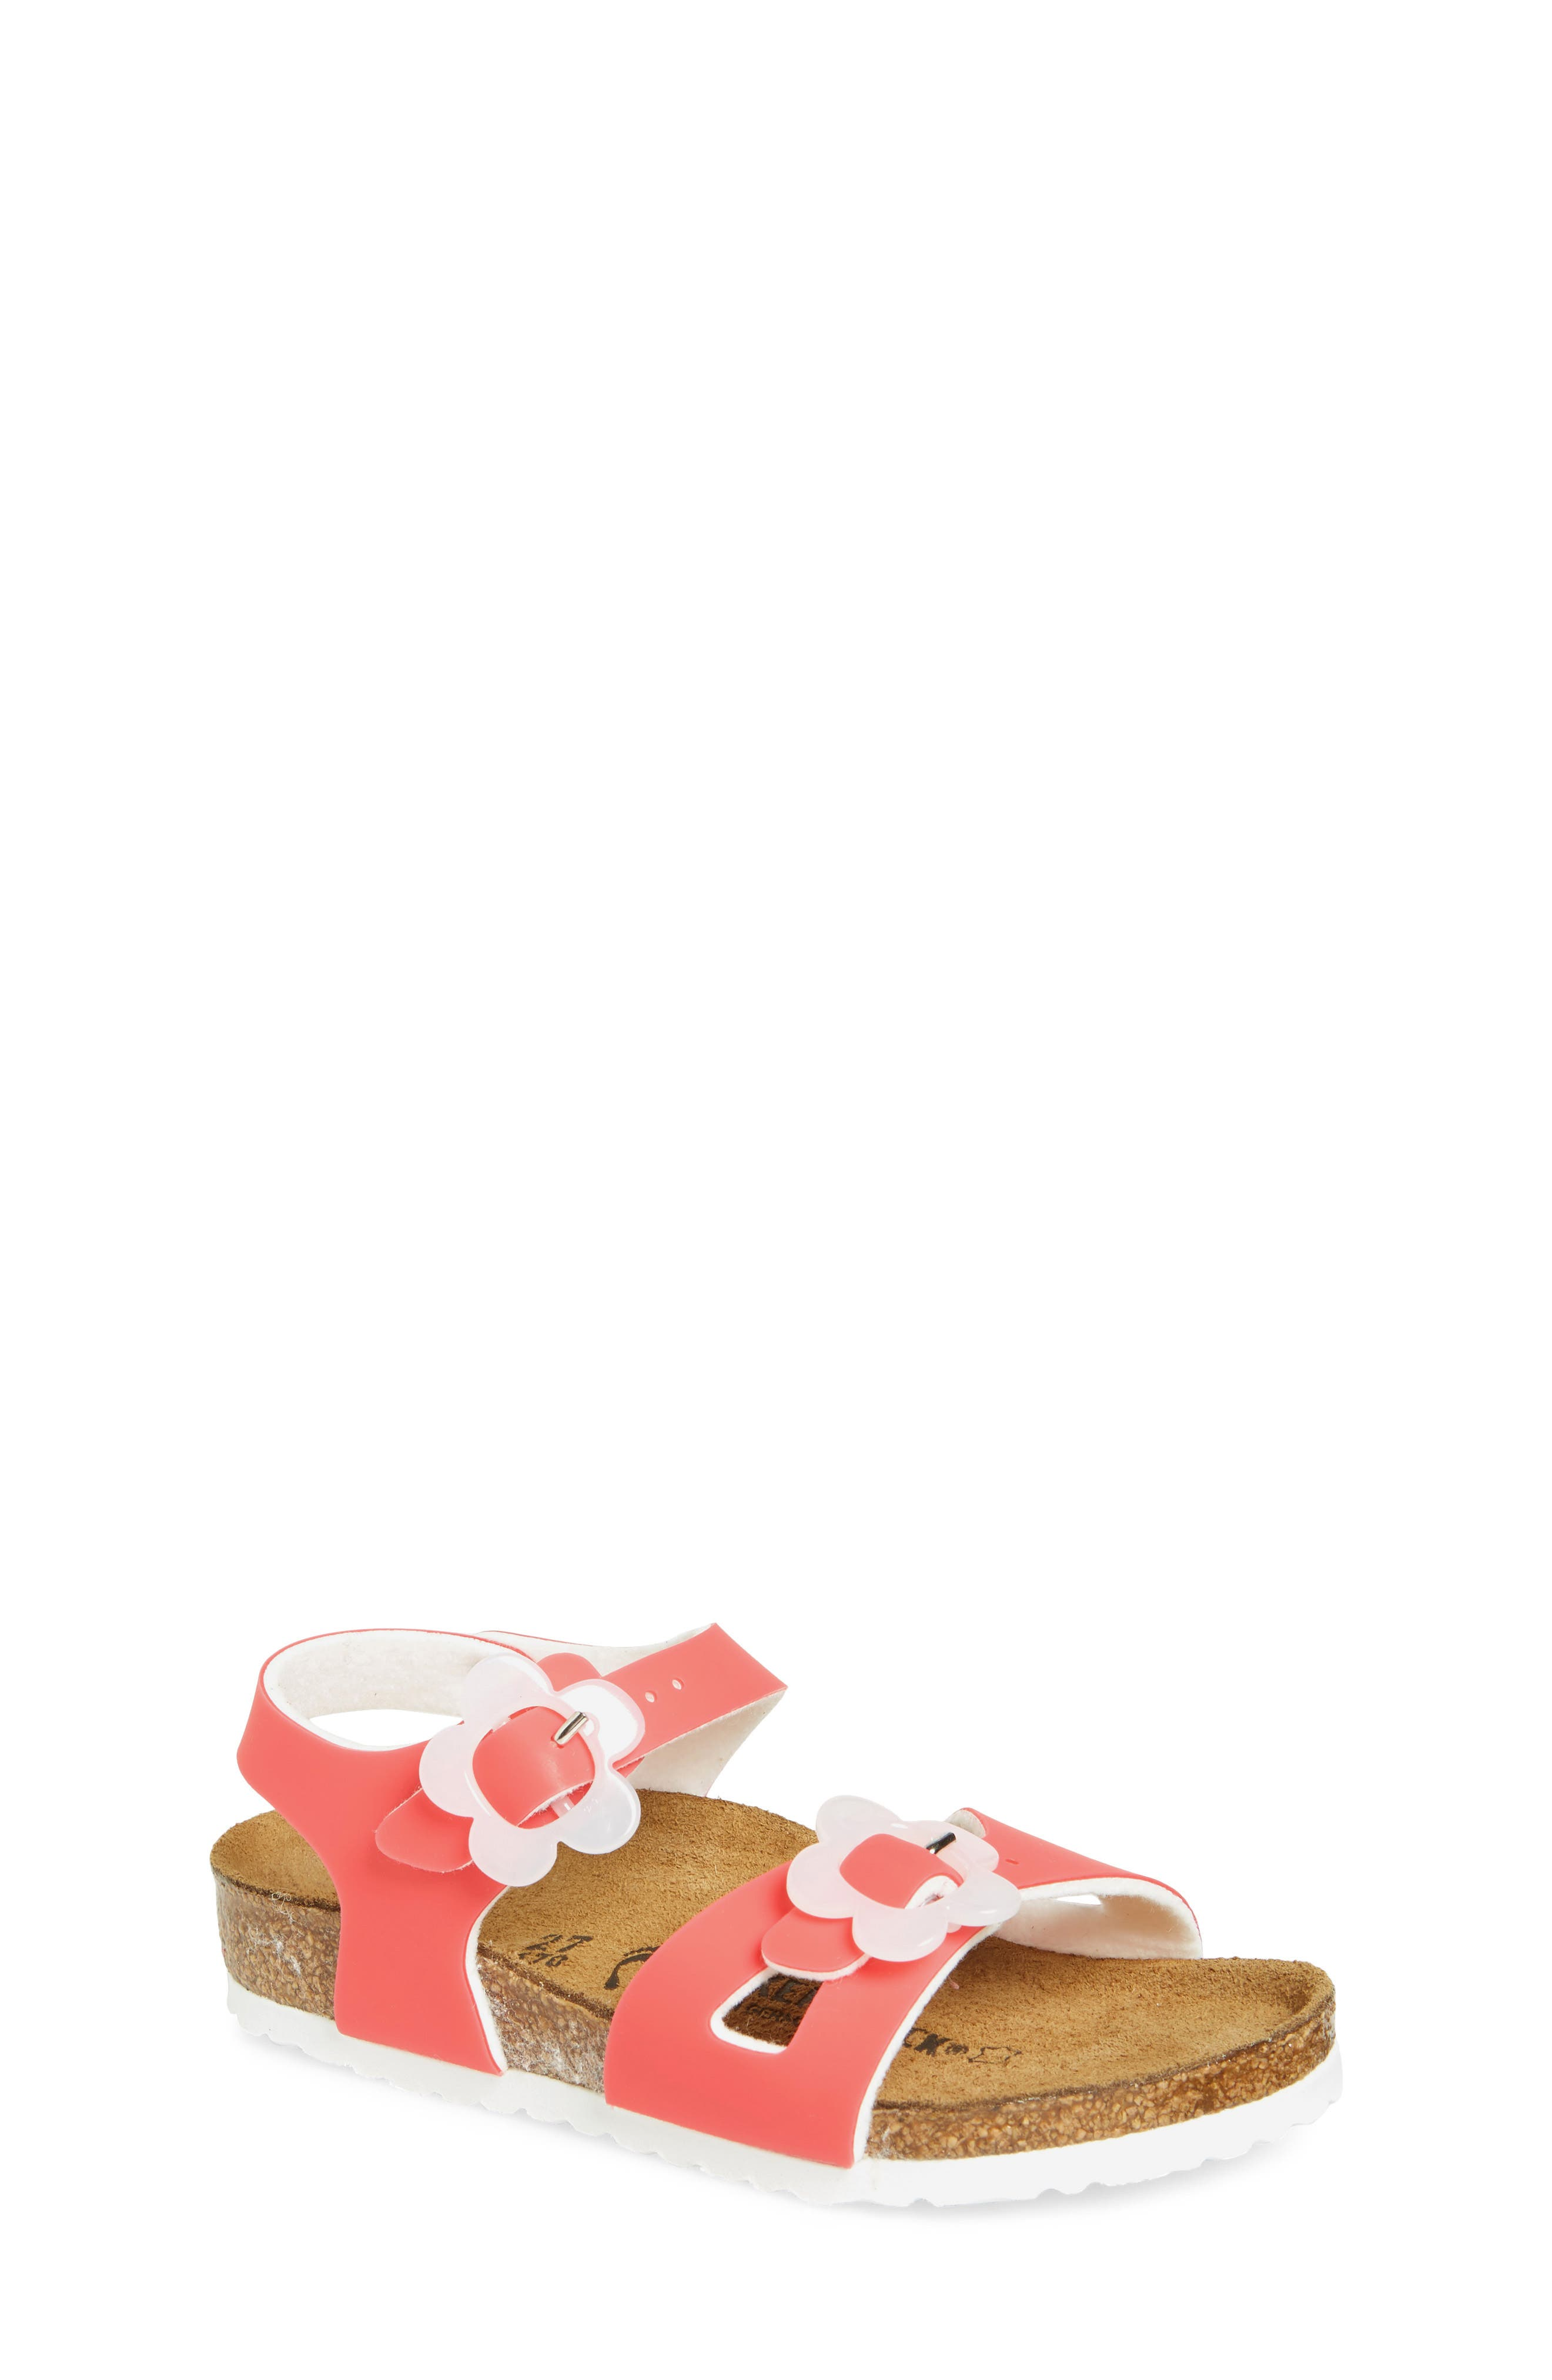 Rio Flowered Sandal,                             Main thumbnail 1, color,                             CANDY PINK